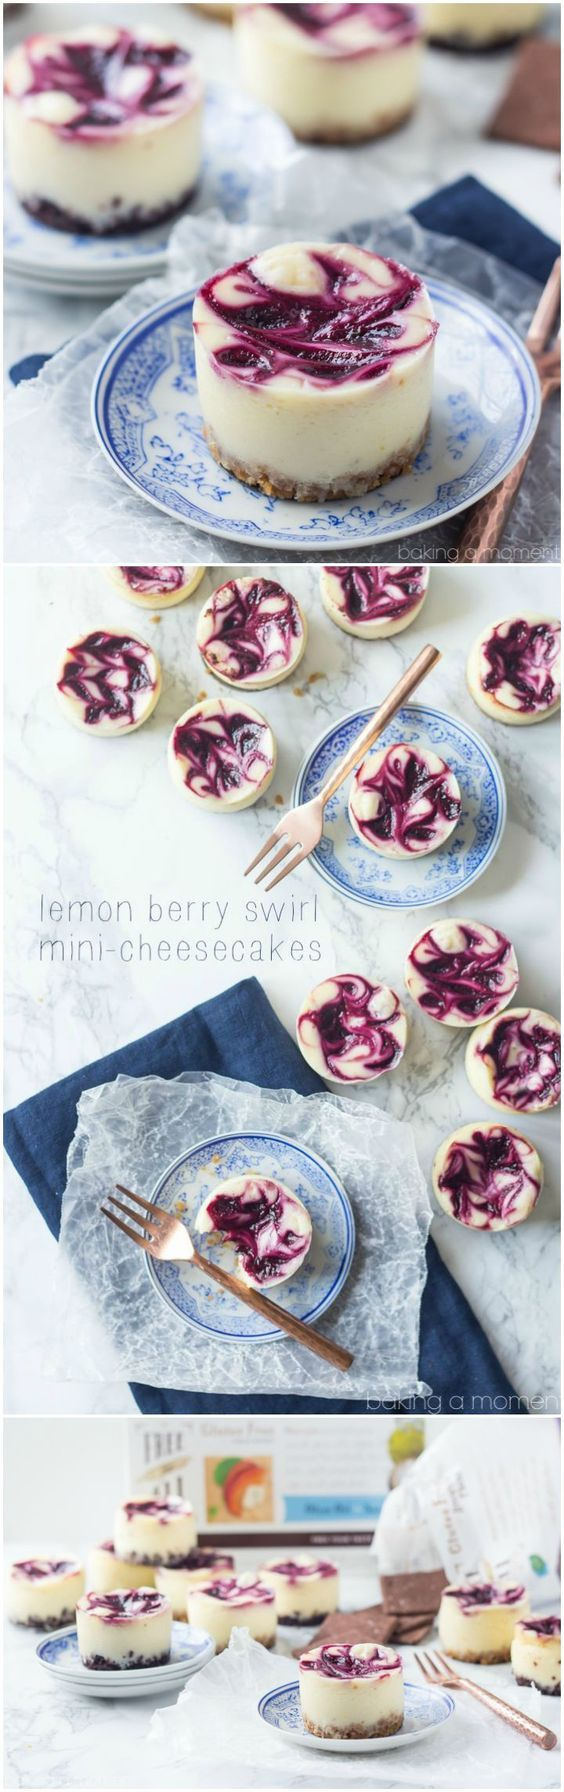 Lemon Berry Swirl Mini-Cheesecakes! So cute, and completely gluten-free :) #ad